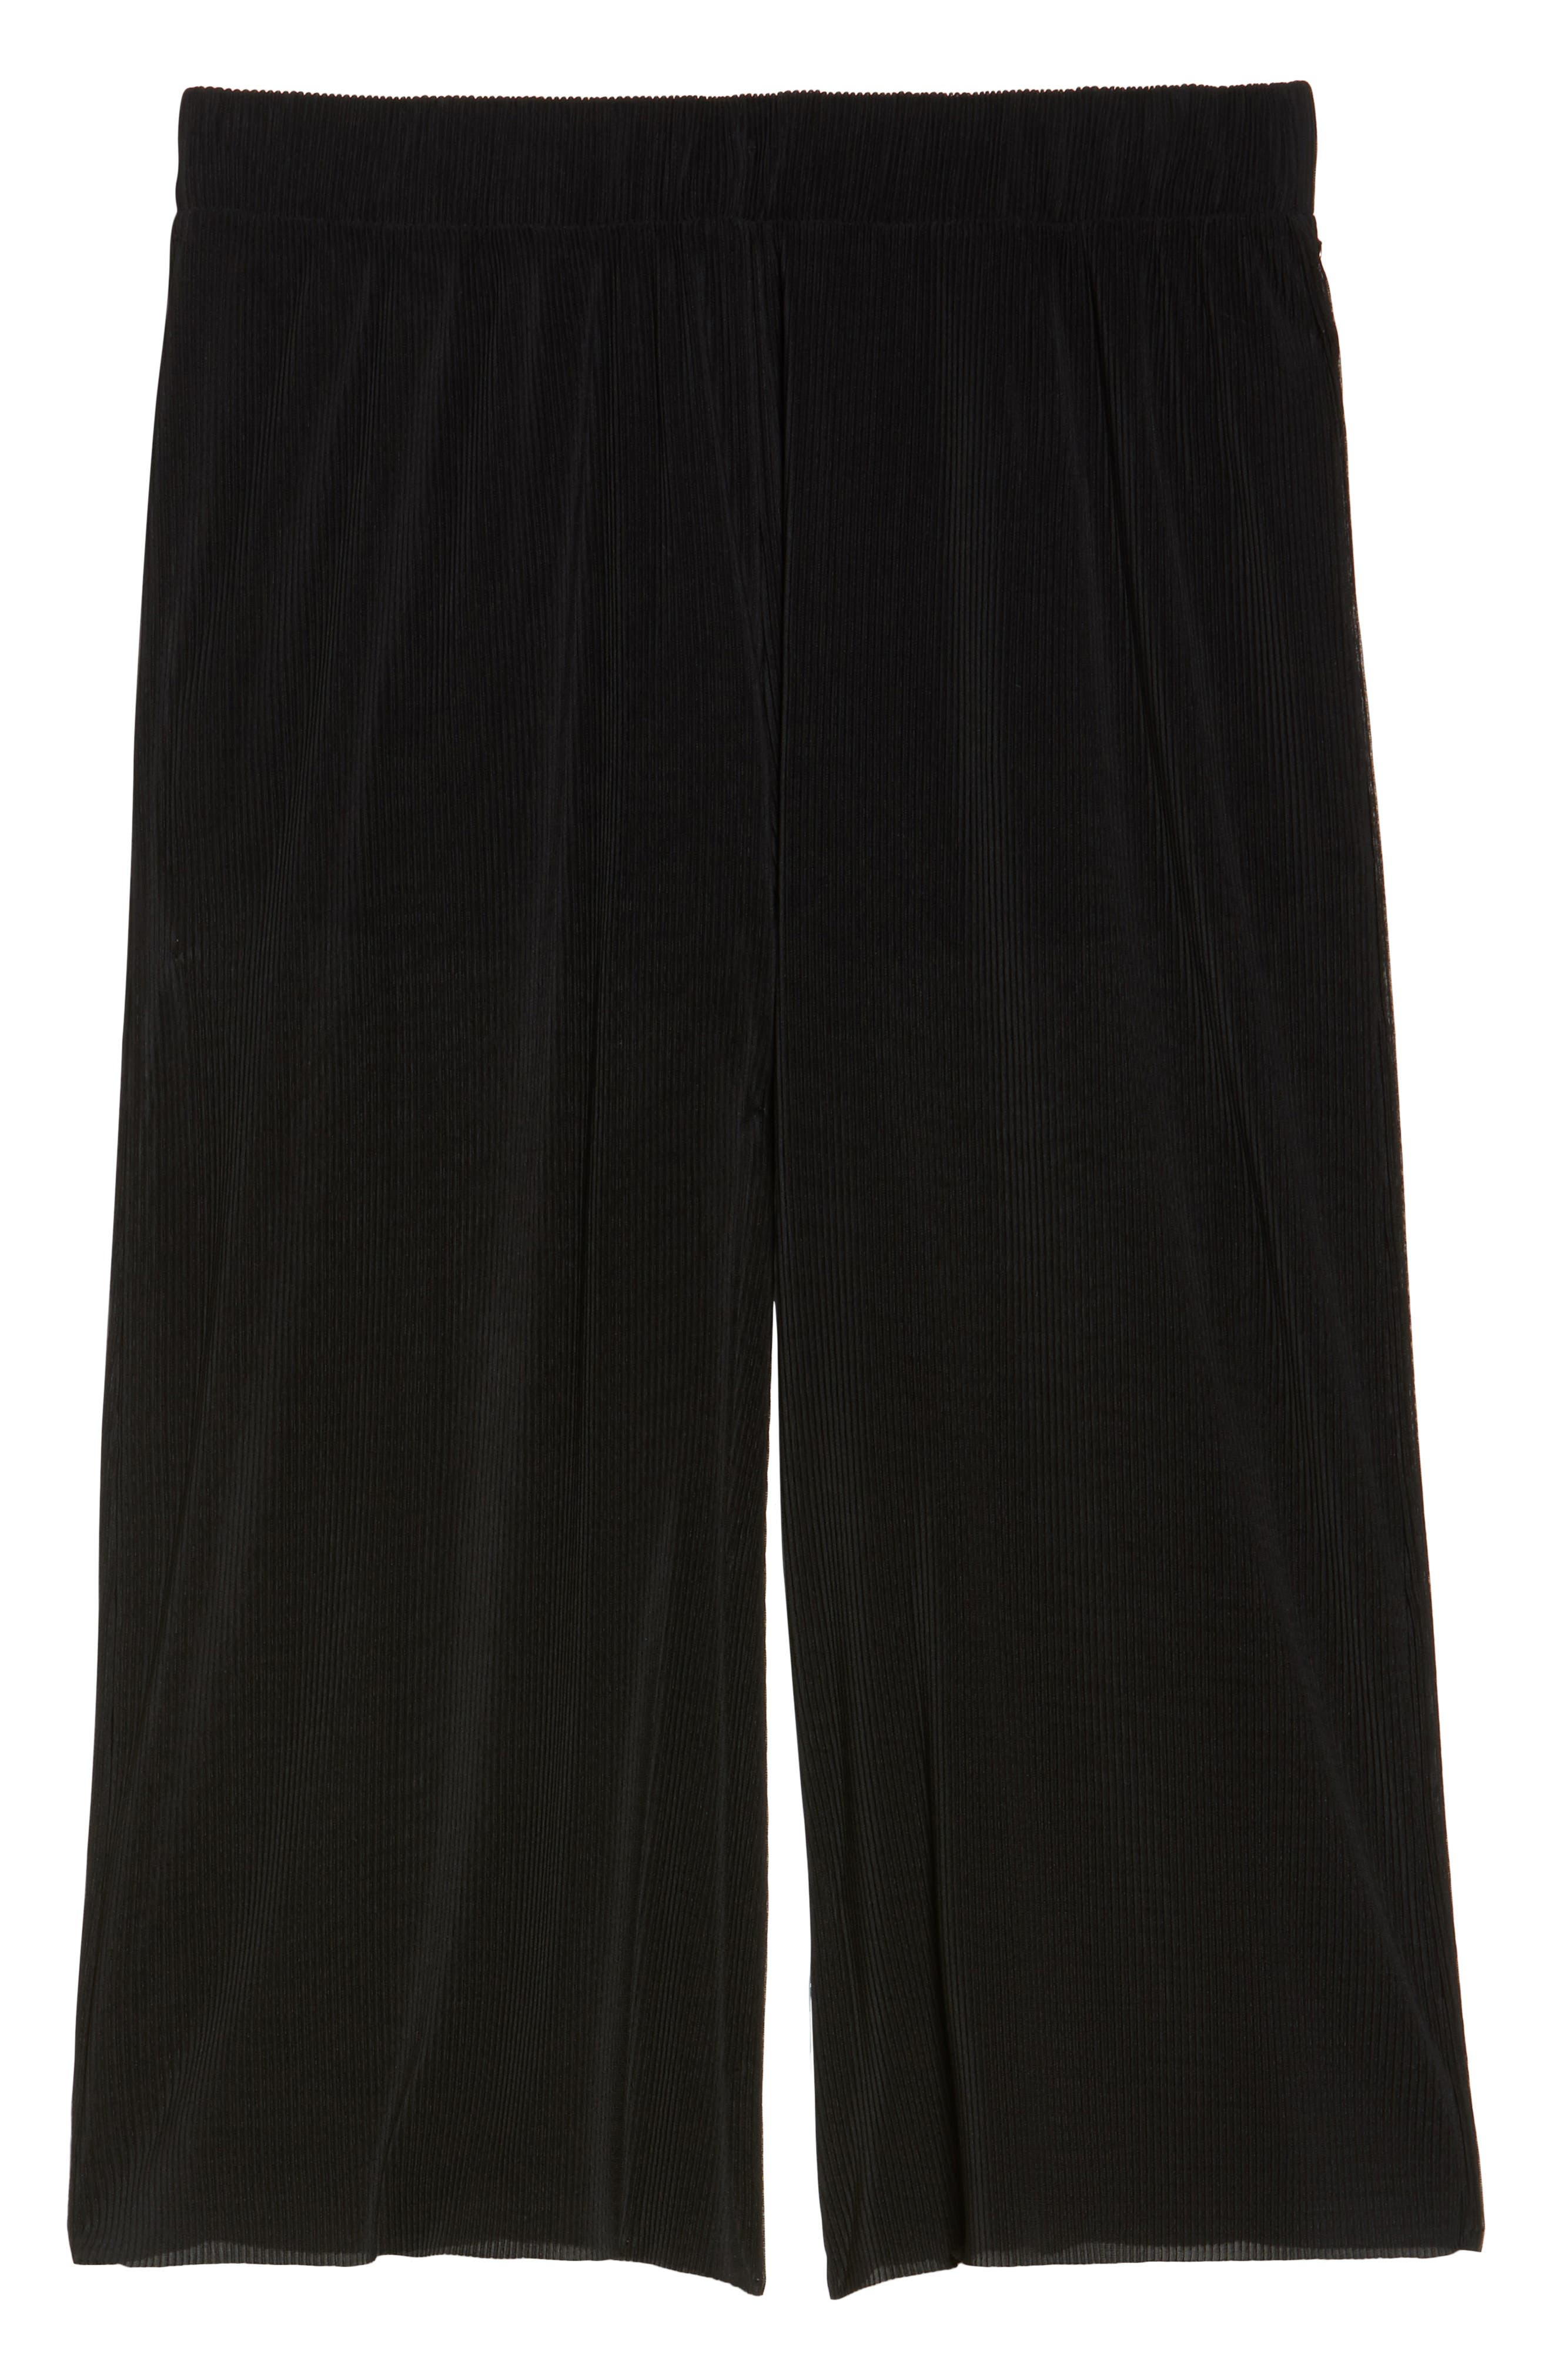 Pleated Culottes,                             Alternate thumbnail 6, color,                             Black